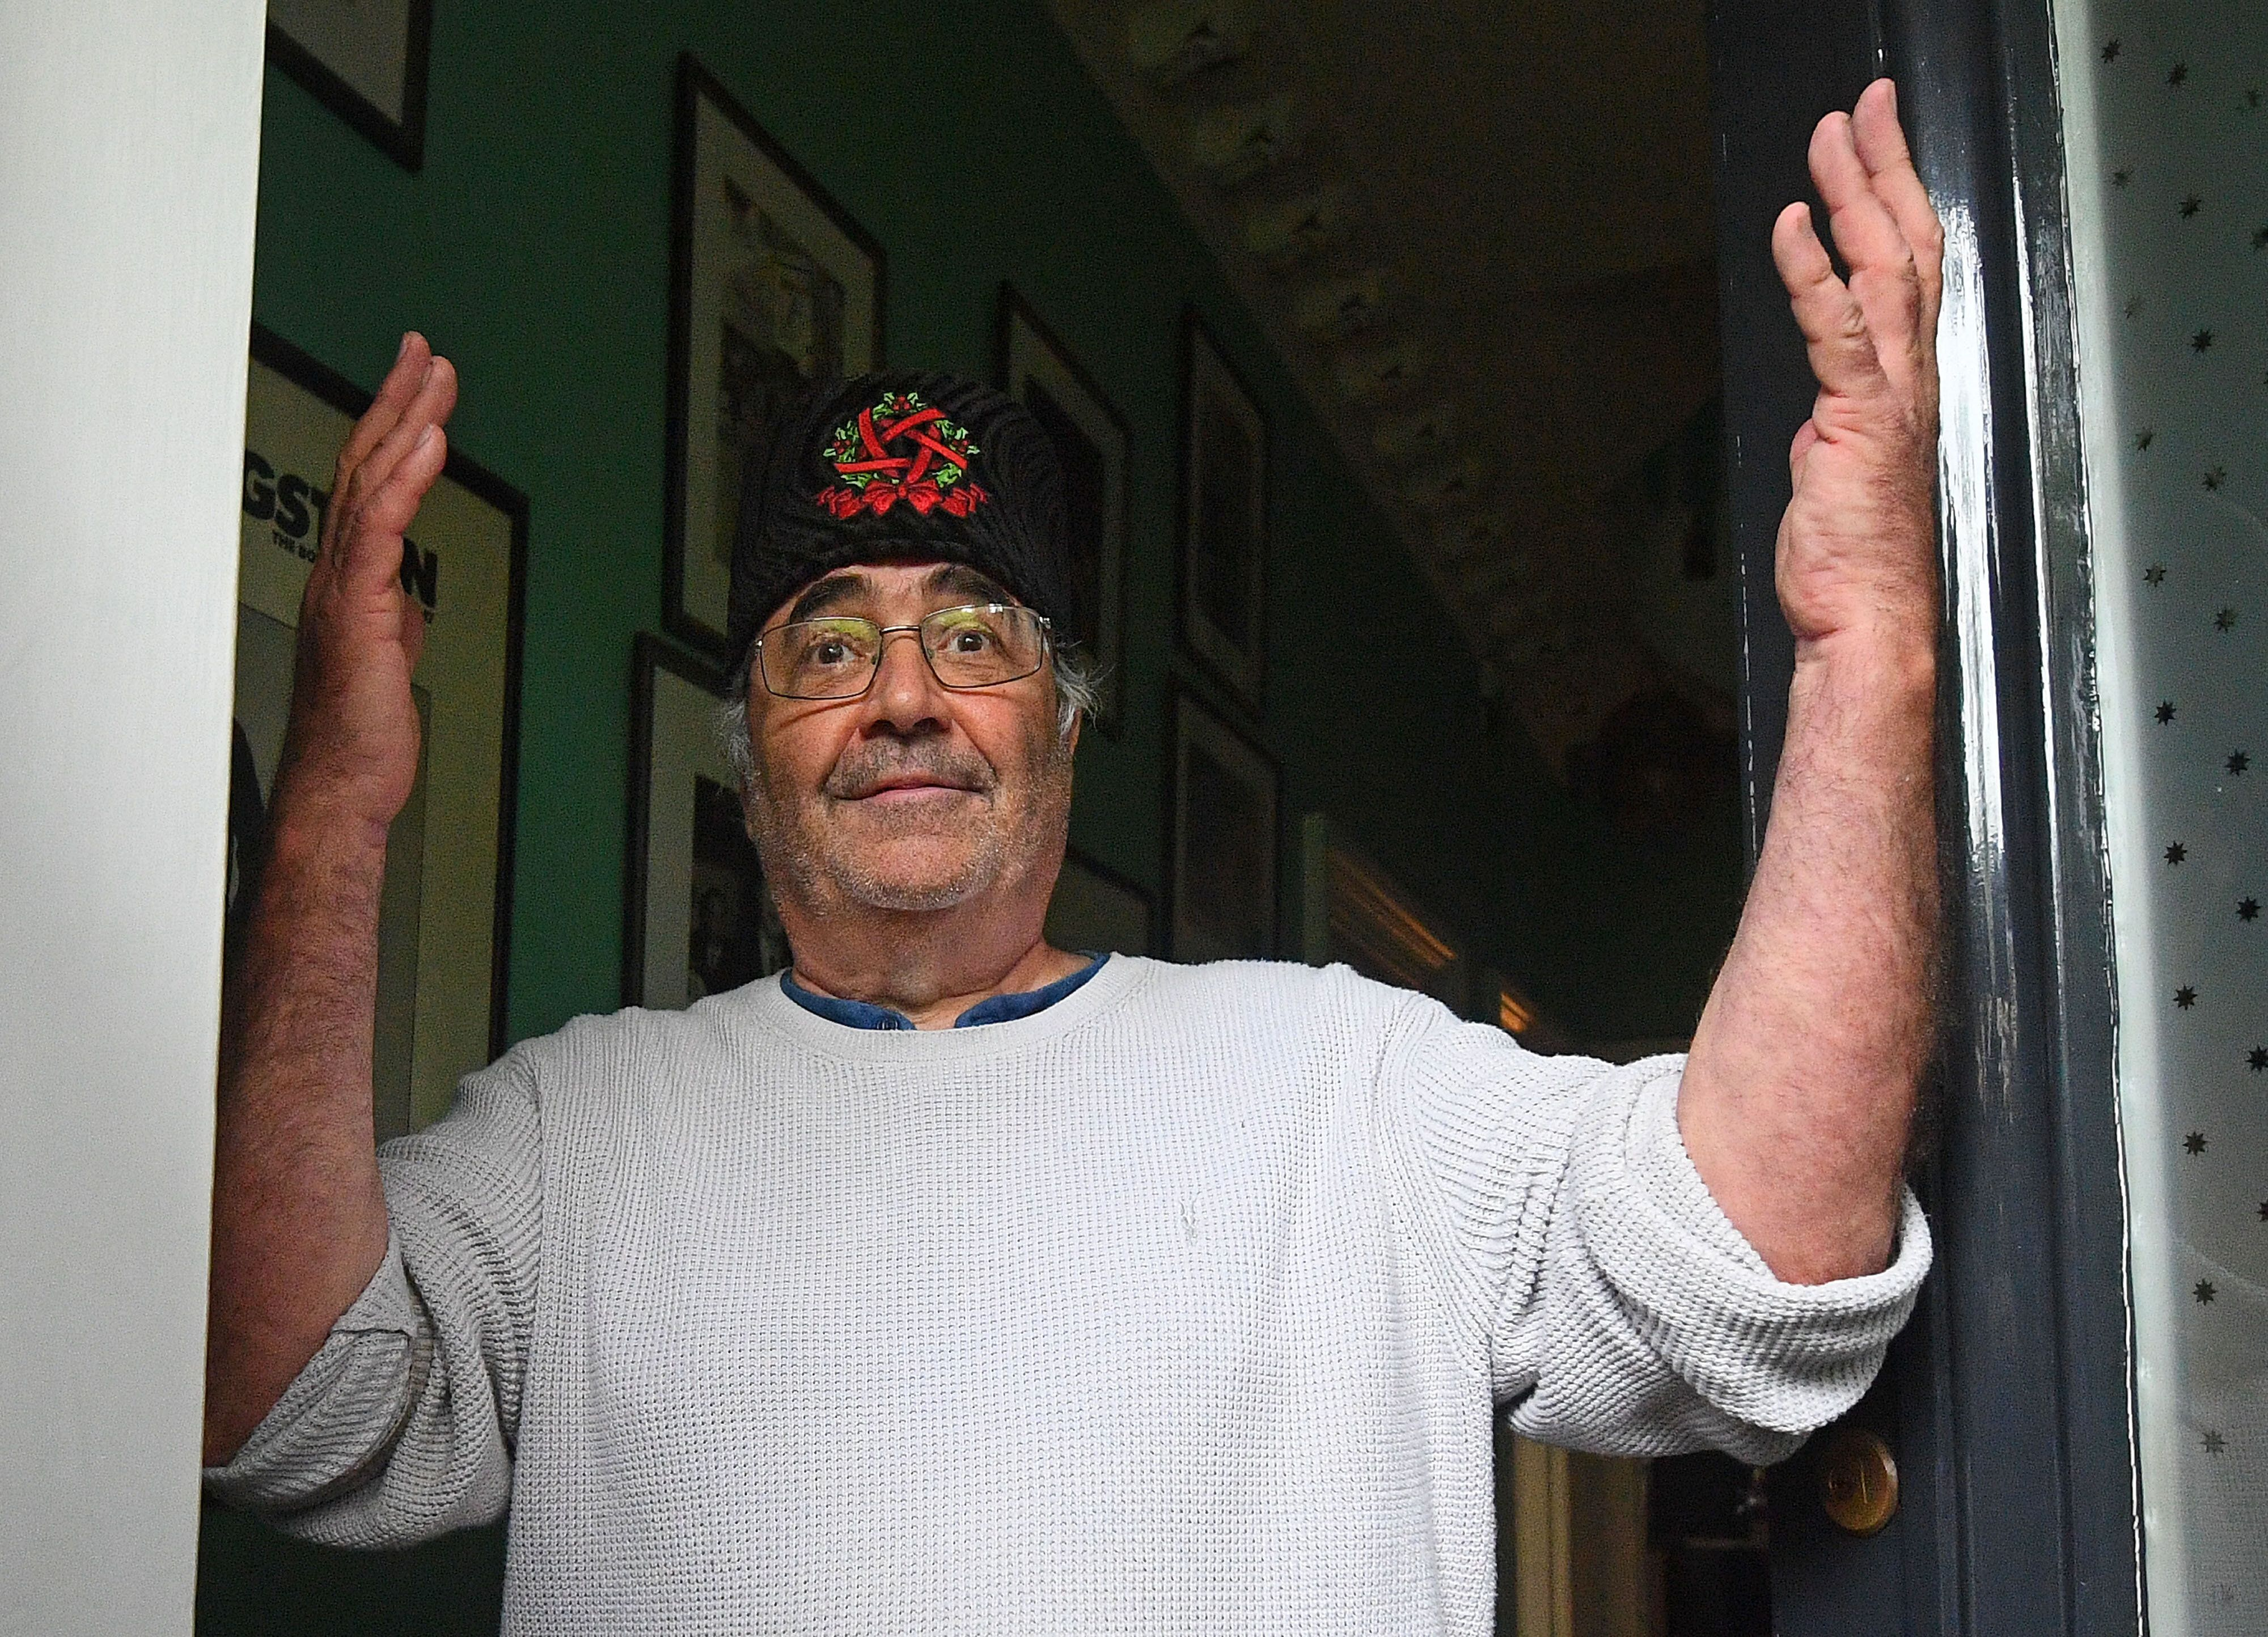 Danny Baker is seenat his London home after he was fired by BBC Radio 5 Live for tweeting a joke about the Duke and Duc